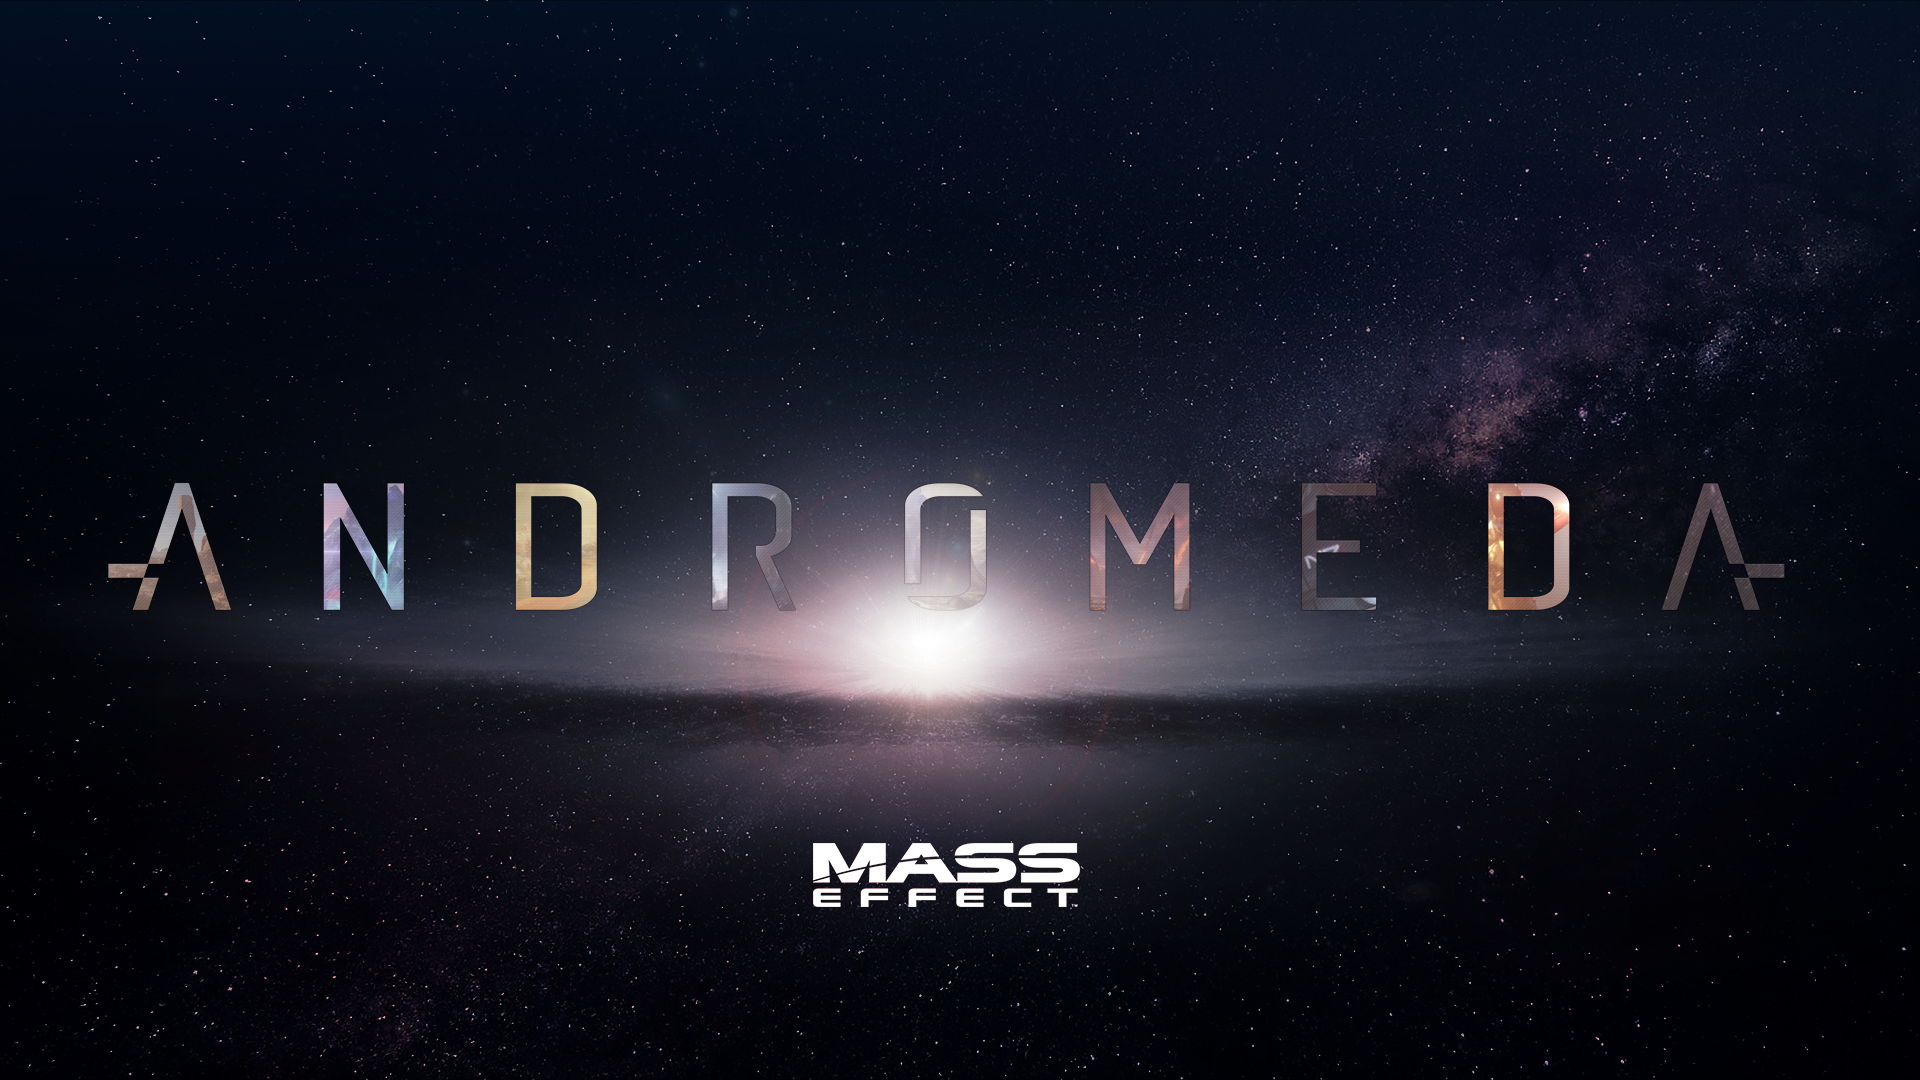 Download Mass Effect Andromeda Wallpaper By Redliner91 1920x1080